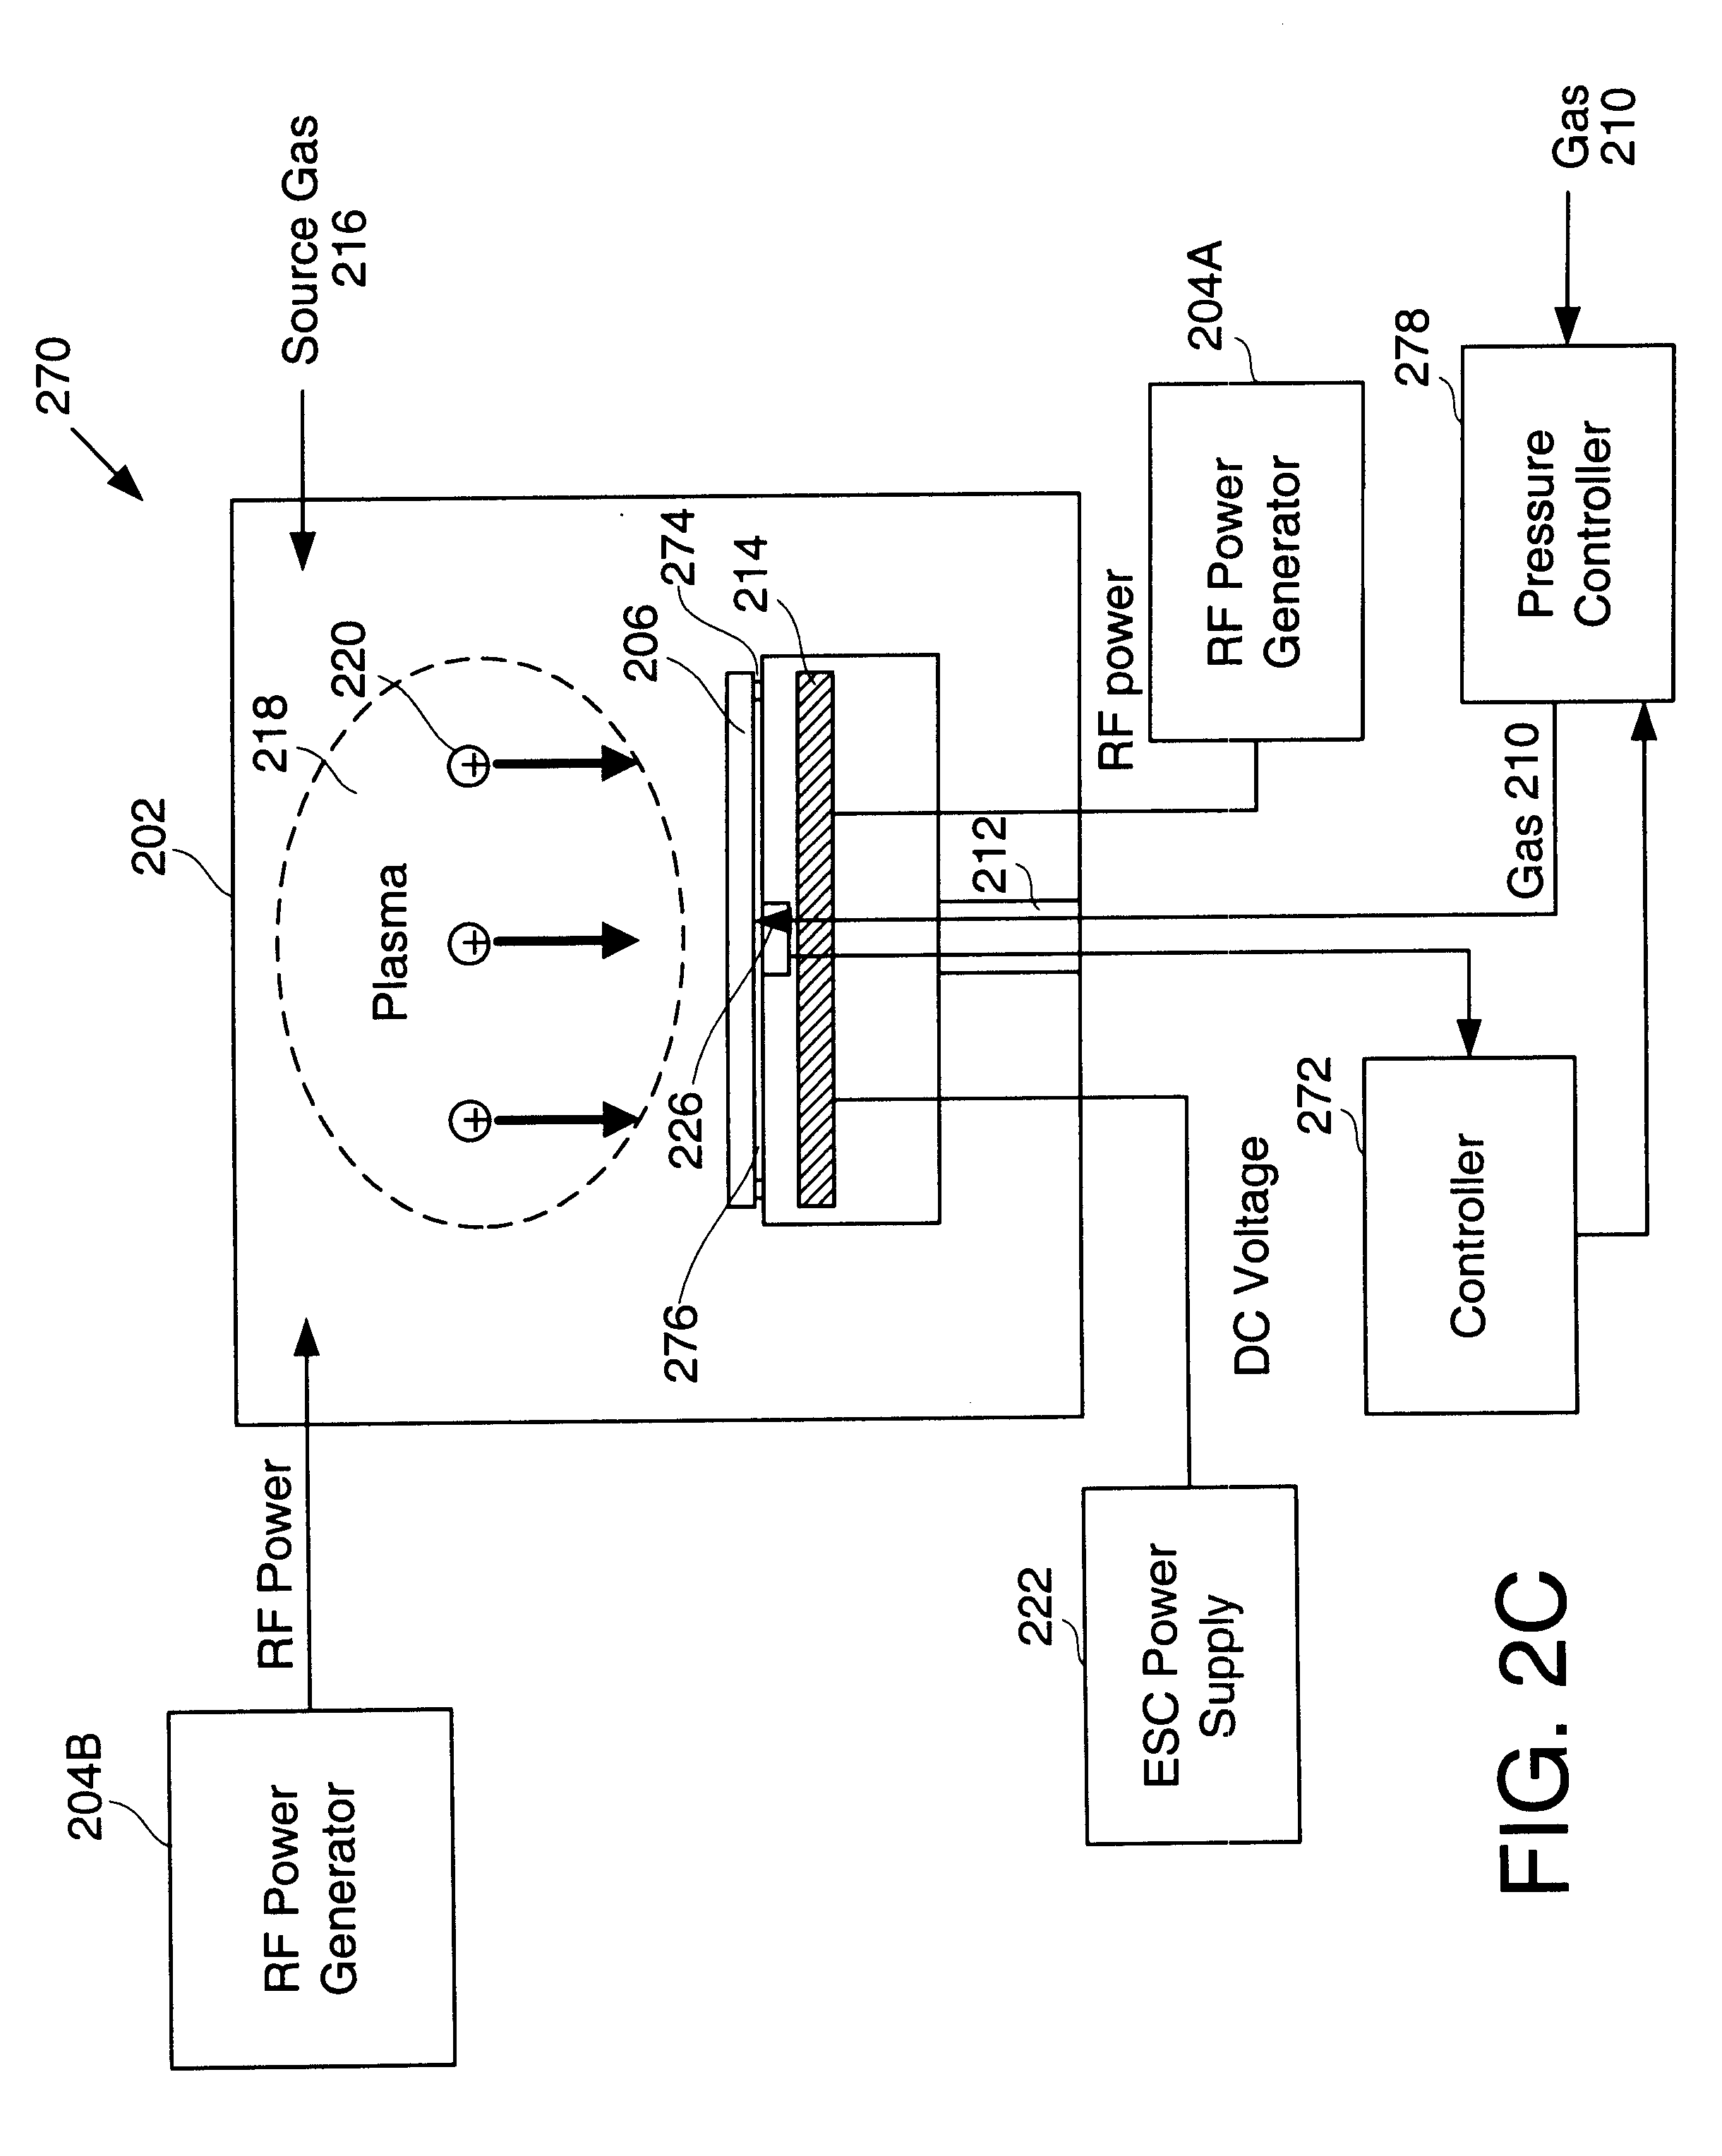 wafer temperature control system and method   Patents #343434